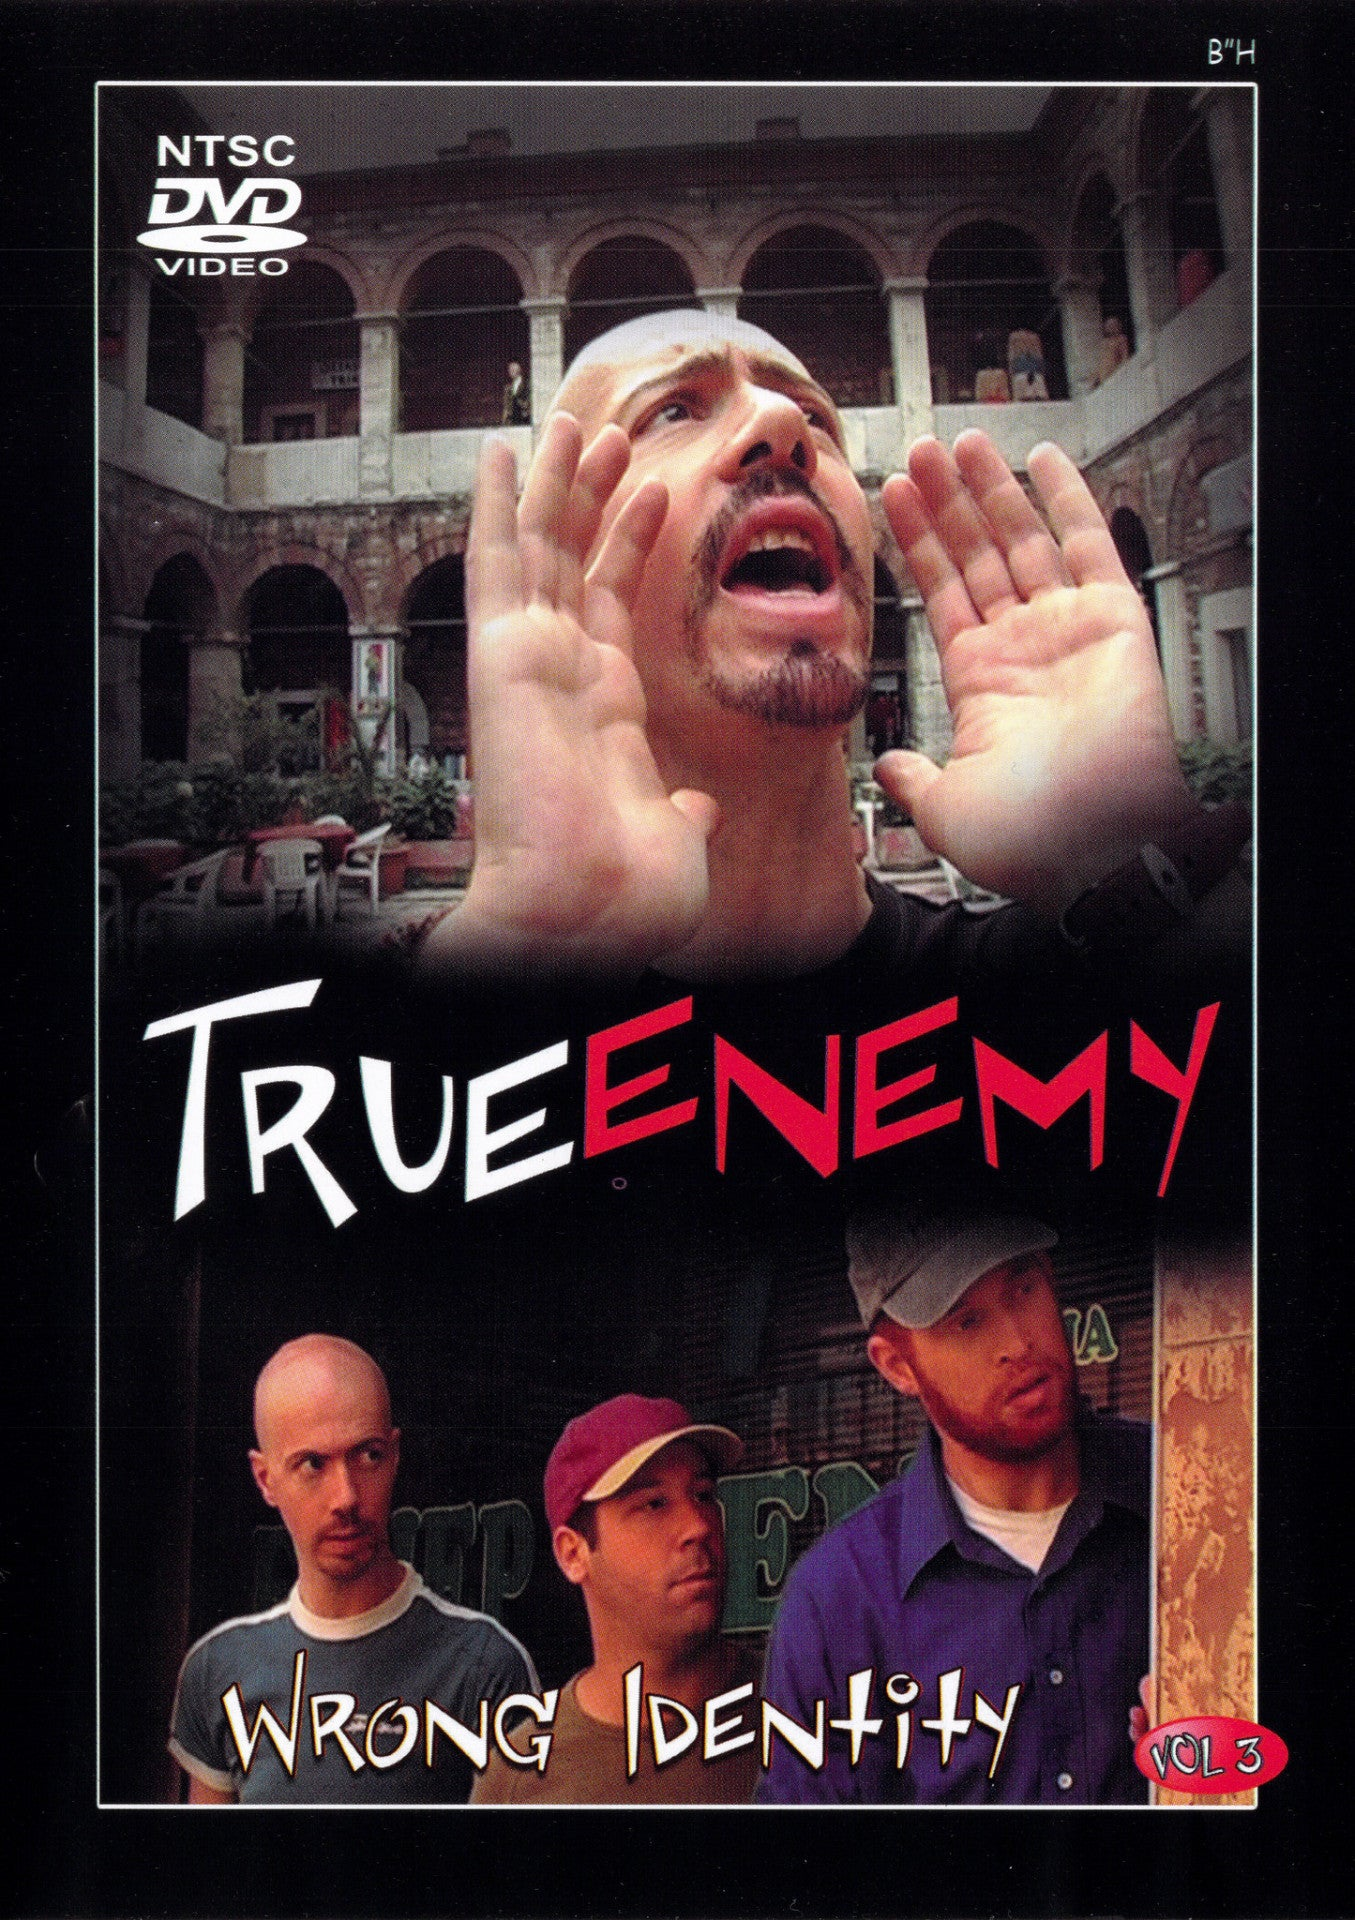 True Enemy - Vol 3 - Wrong Identity